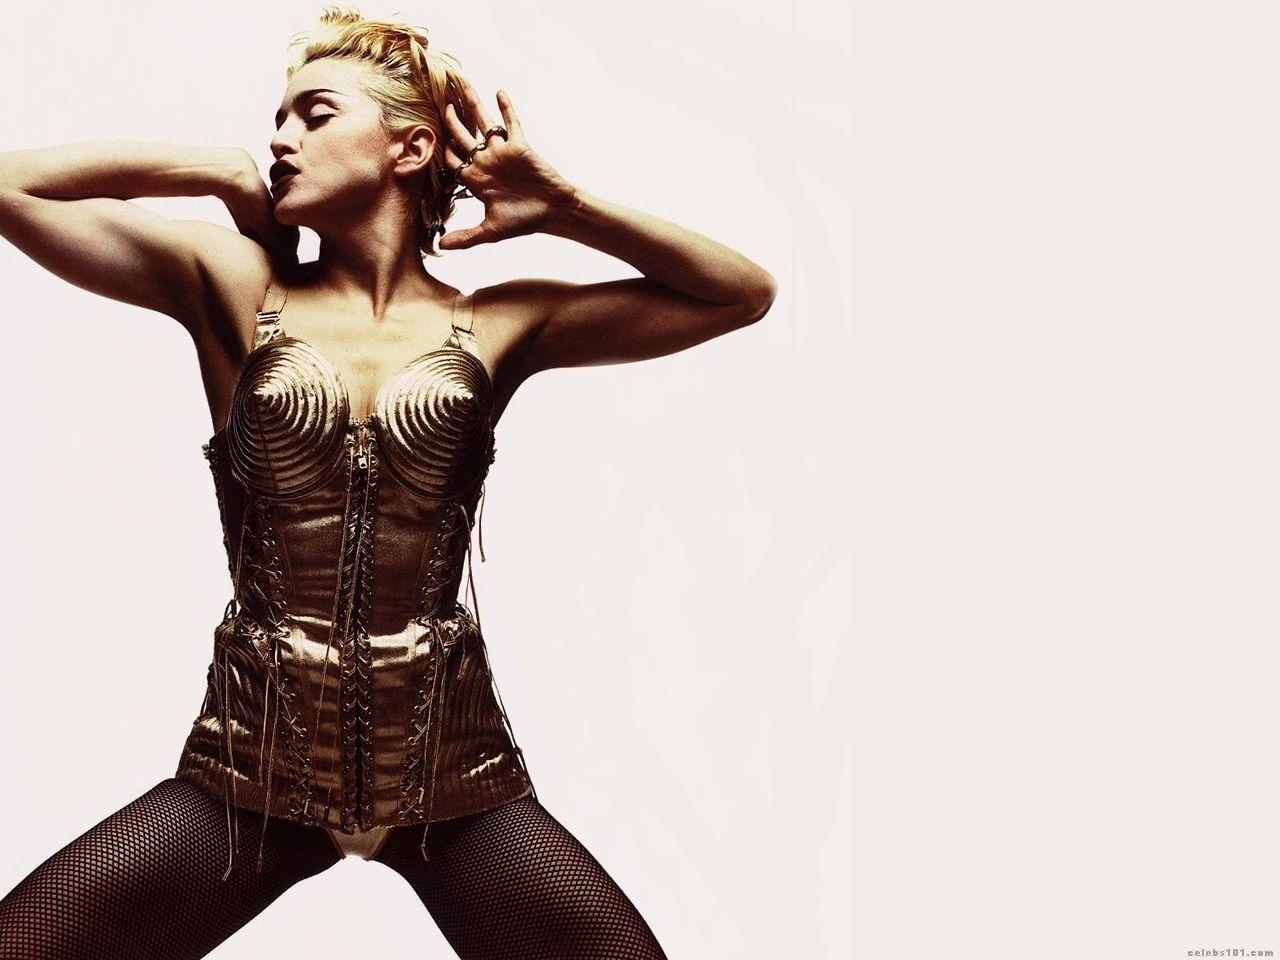 Madonna High quality wallpaper size 1280x960 of Madonna Wallpaper 1280x960